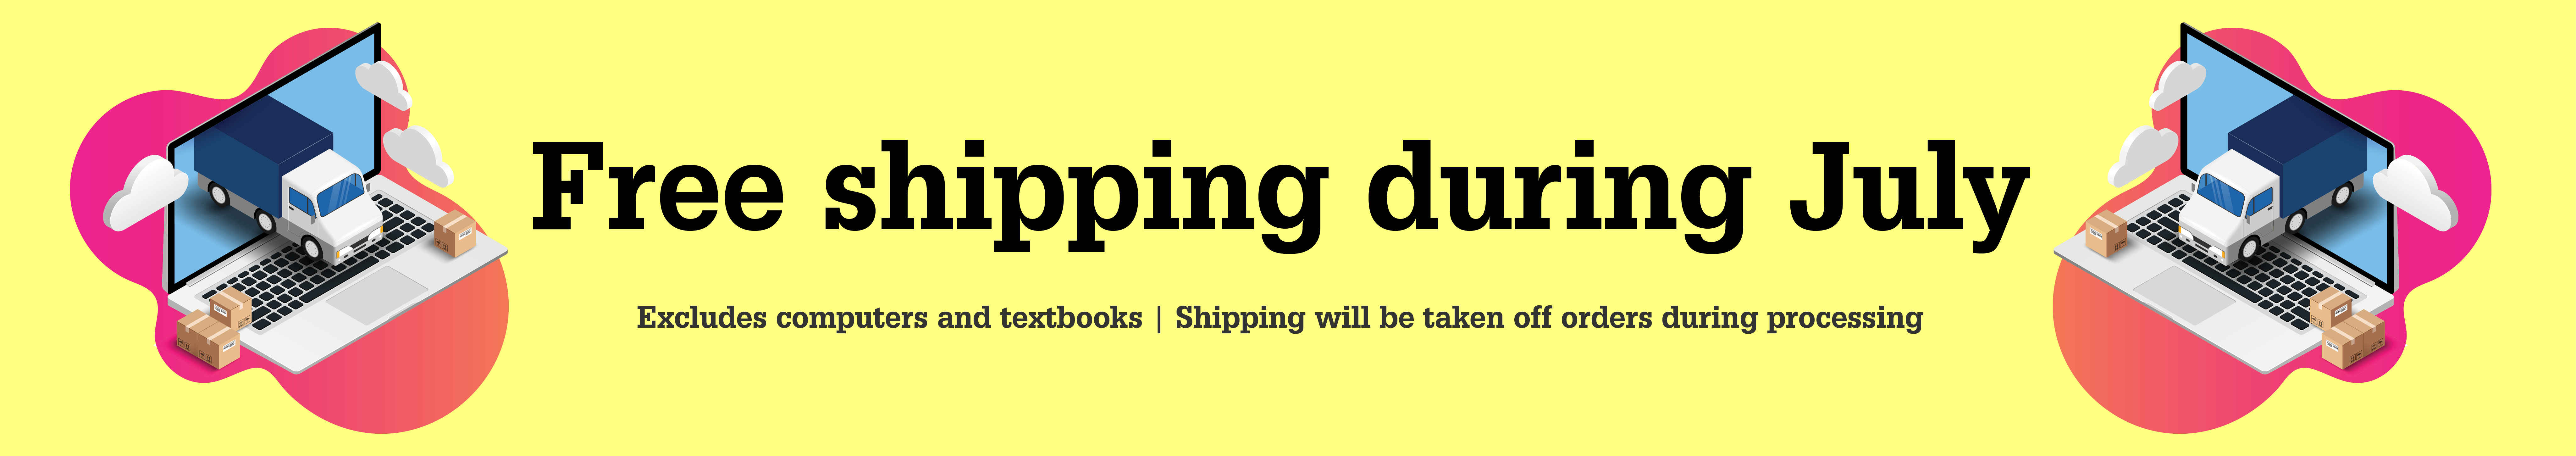 Free shipping for July! (excluding textbooks and computers)!